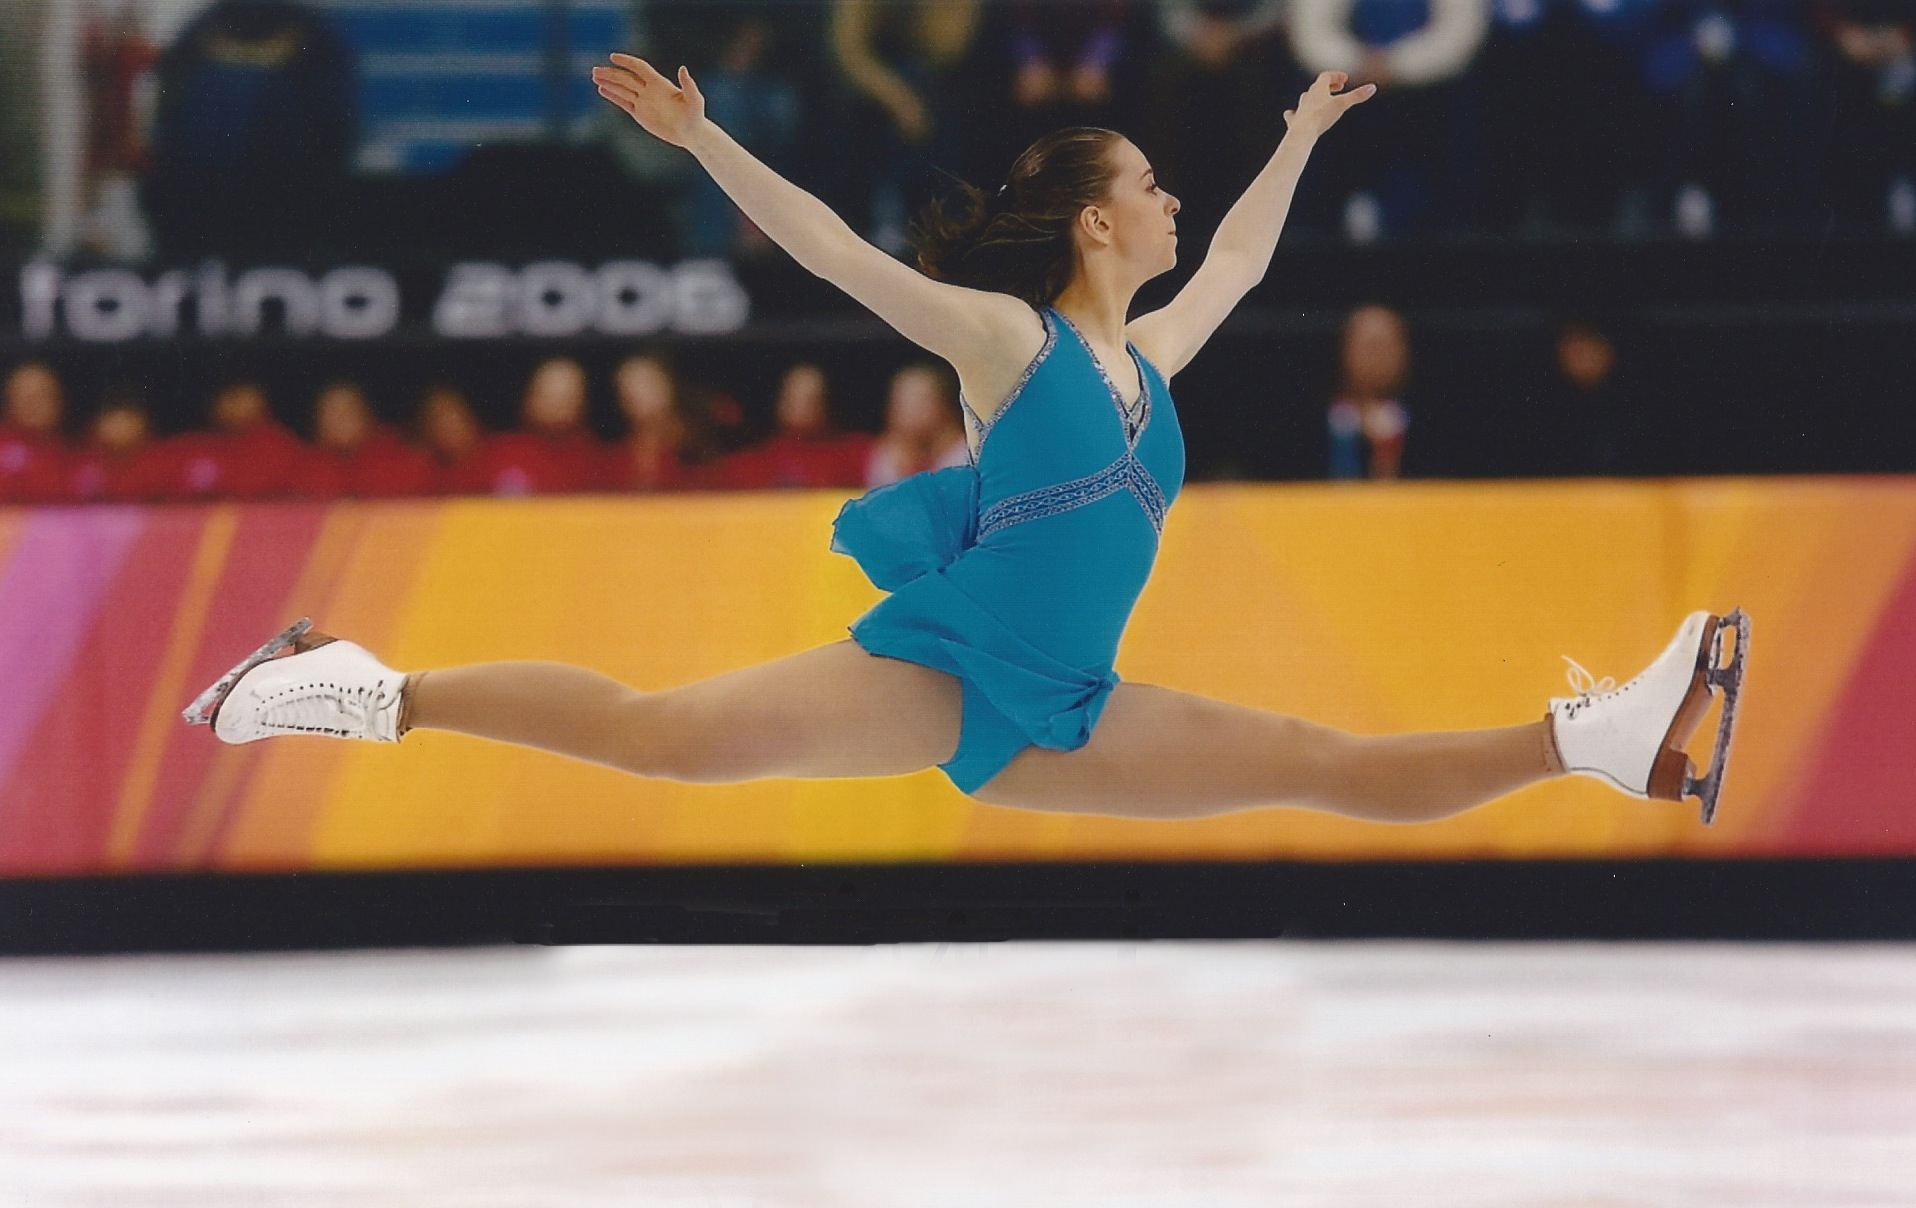 2007 national silver medalist Emily Hughes represented the US at the 2006 Olympics.